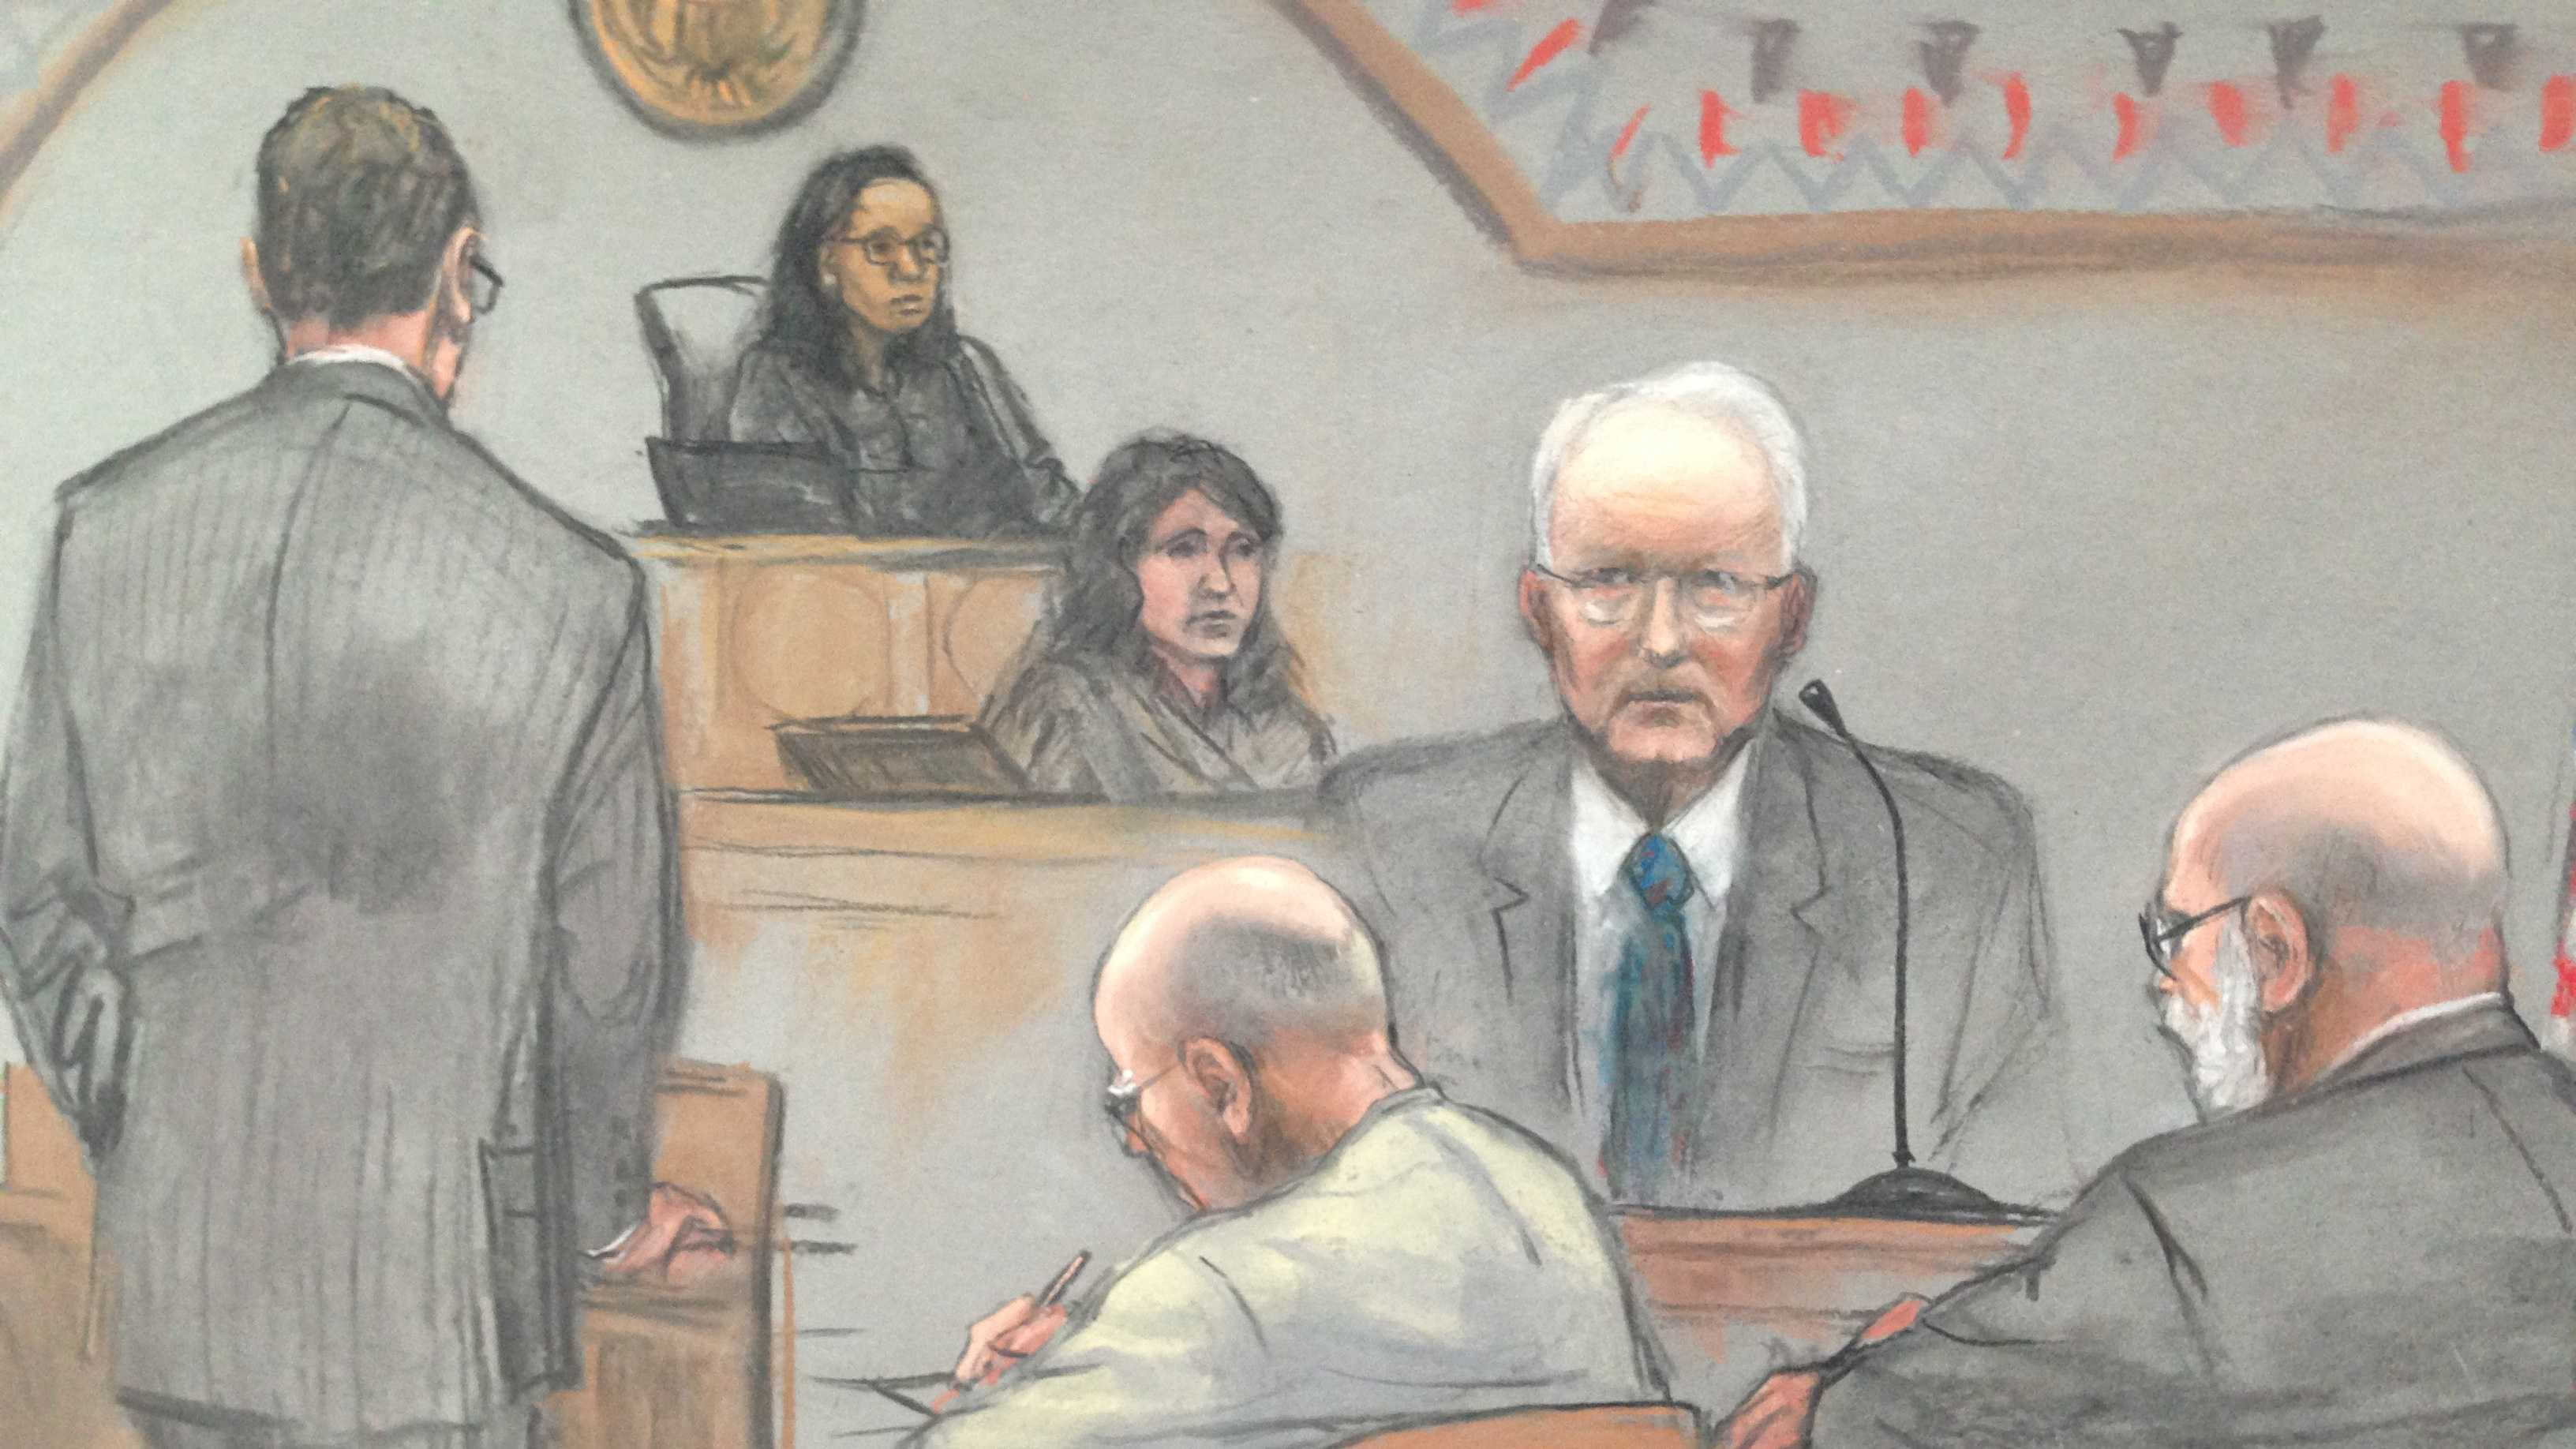 Bulger Sketch John Morris Testifies Bulger Watches 070113.JPG